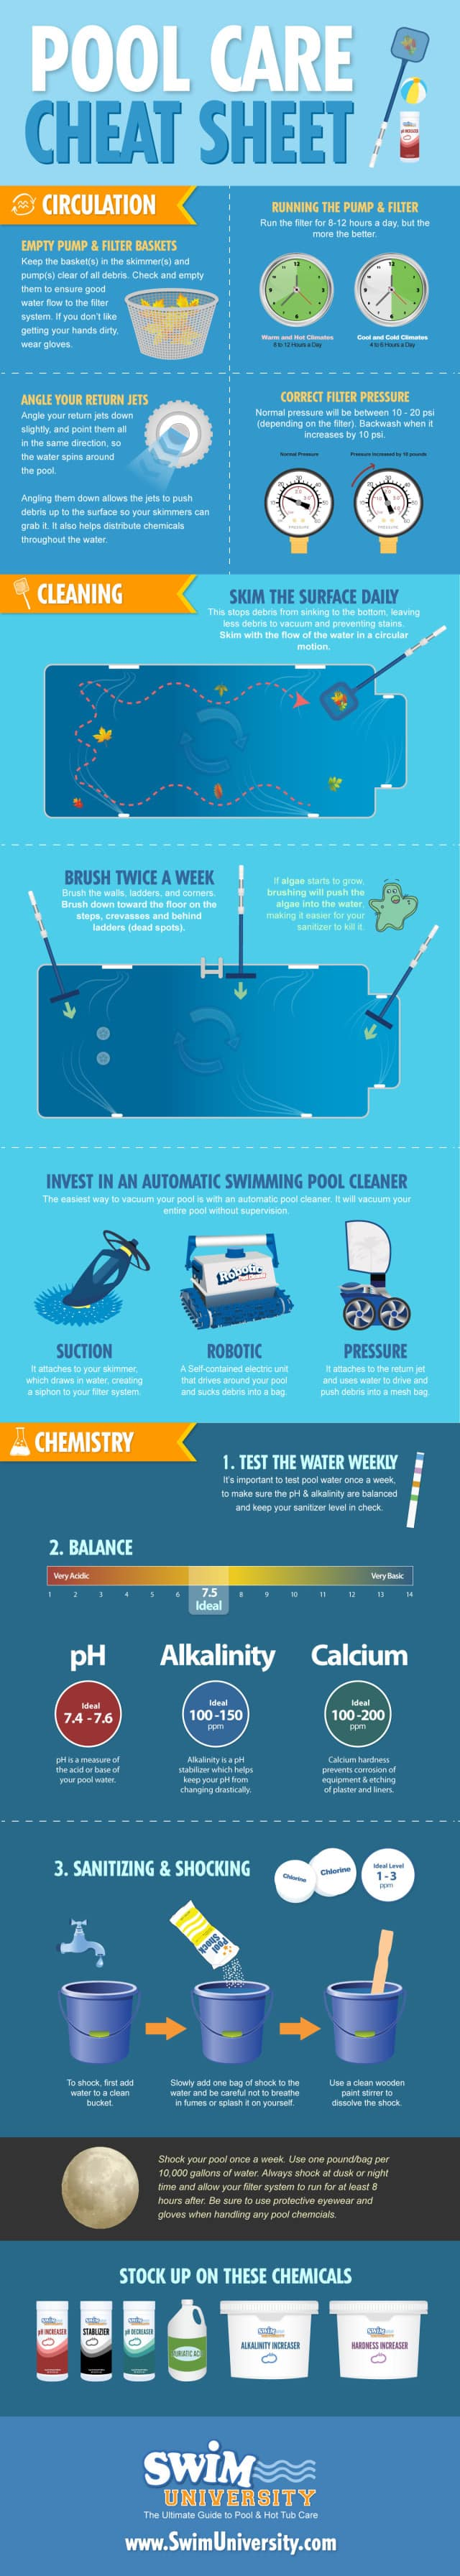 Swimming Pool Care Cheat Sheet